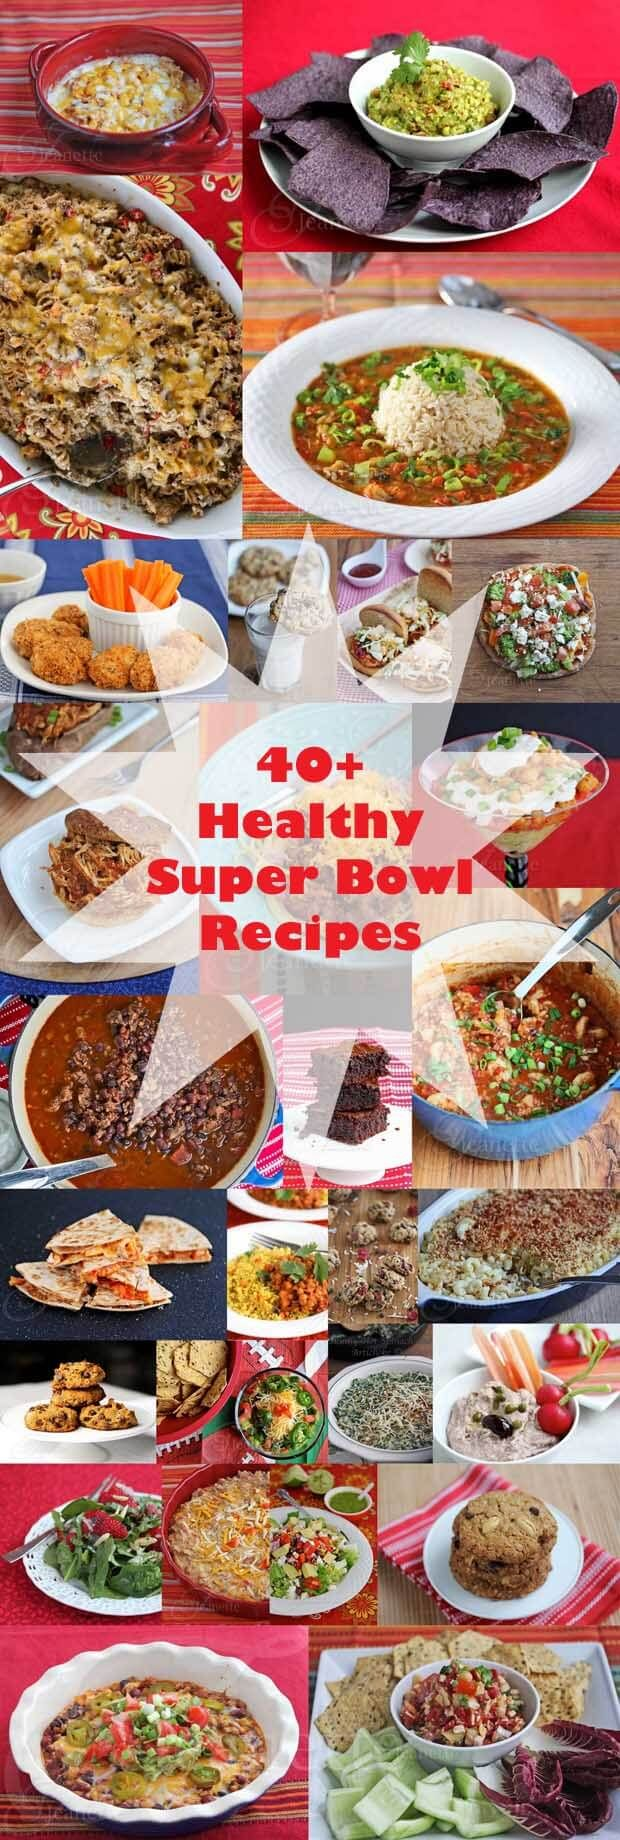 12 Healthy Super Bowl Snack Recipes ~ http://jeanetteshealthyliving.com